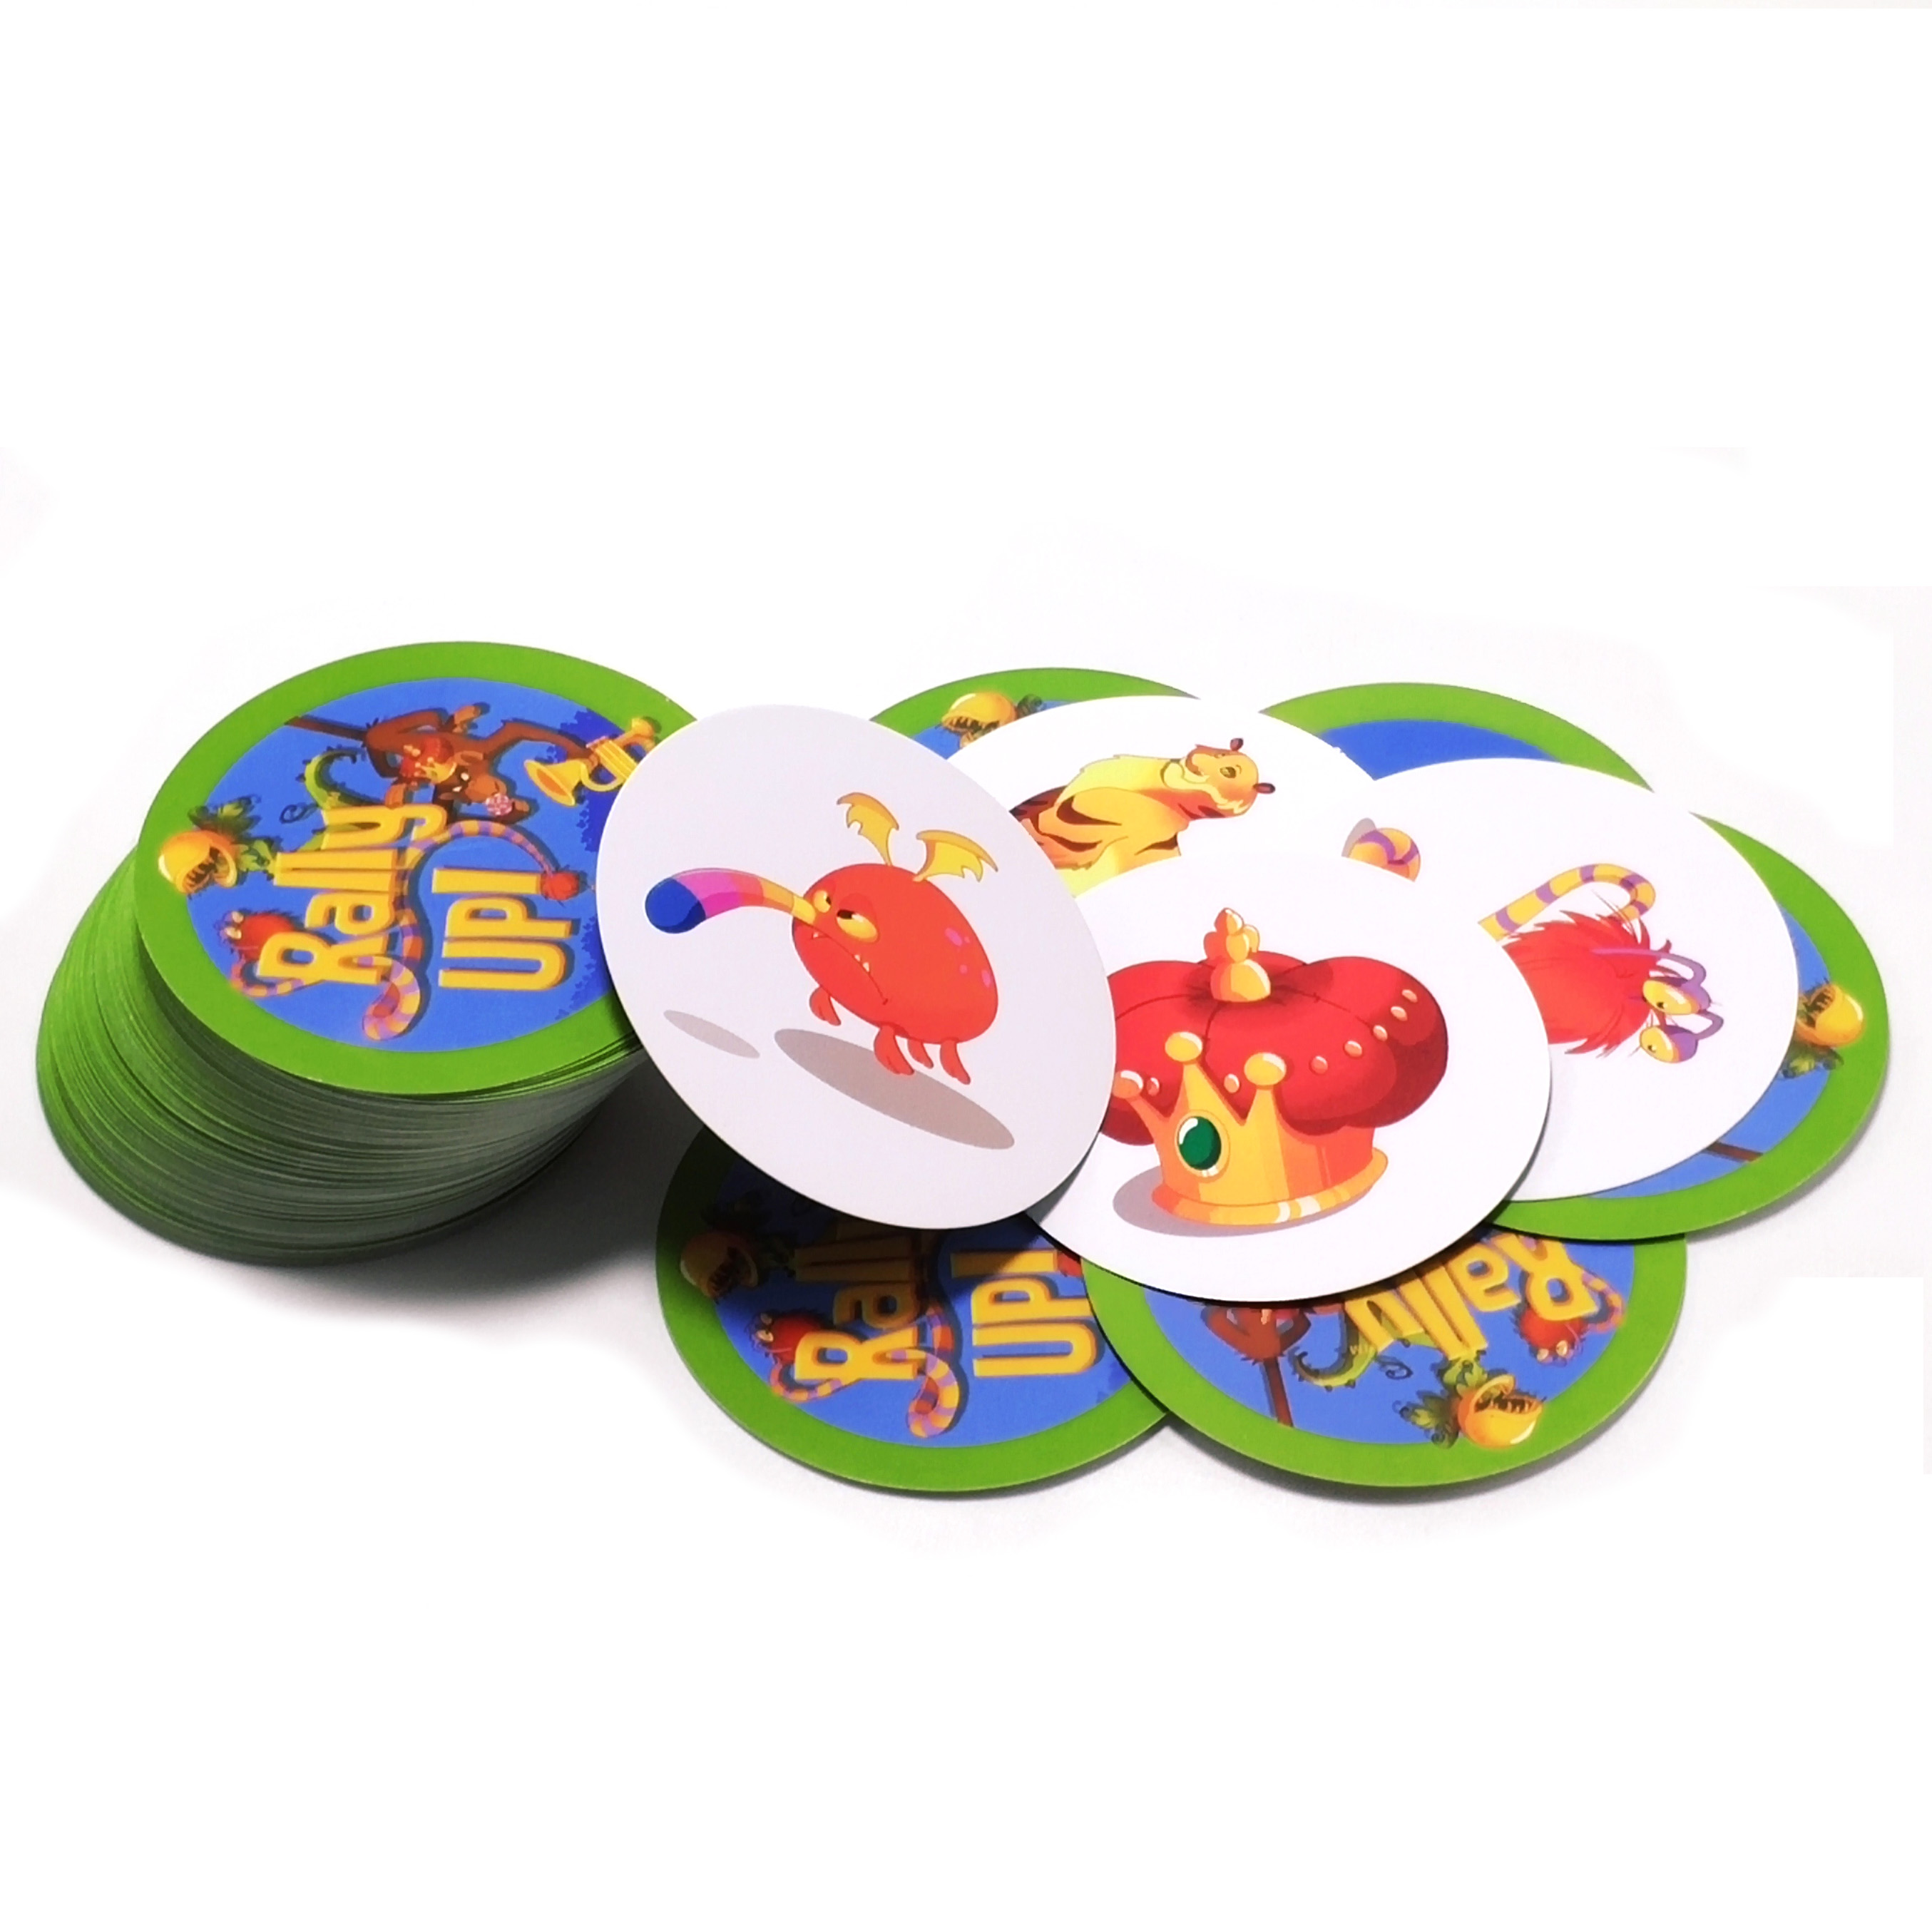 Rally It Up Board Game 121 Playing Cards For Home Party Entertainment Cards Game Category Spot Animals Plants Fruits Instruments